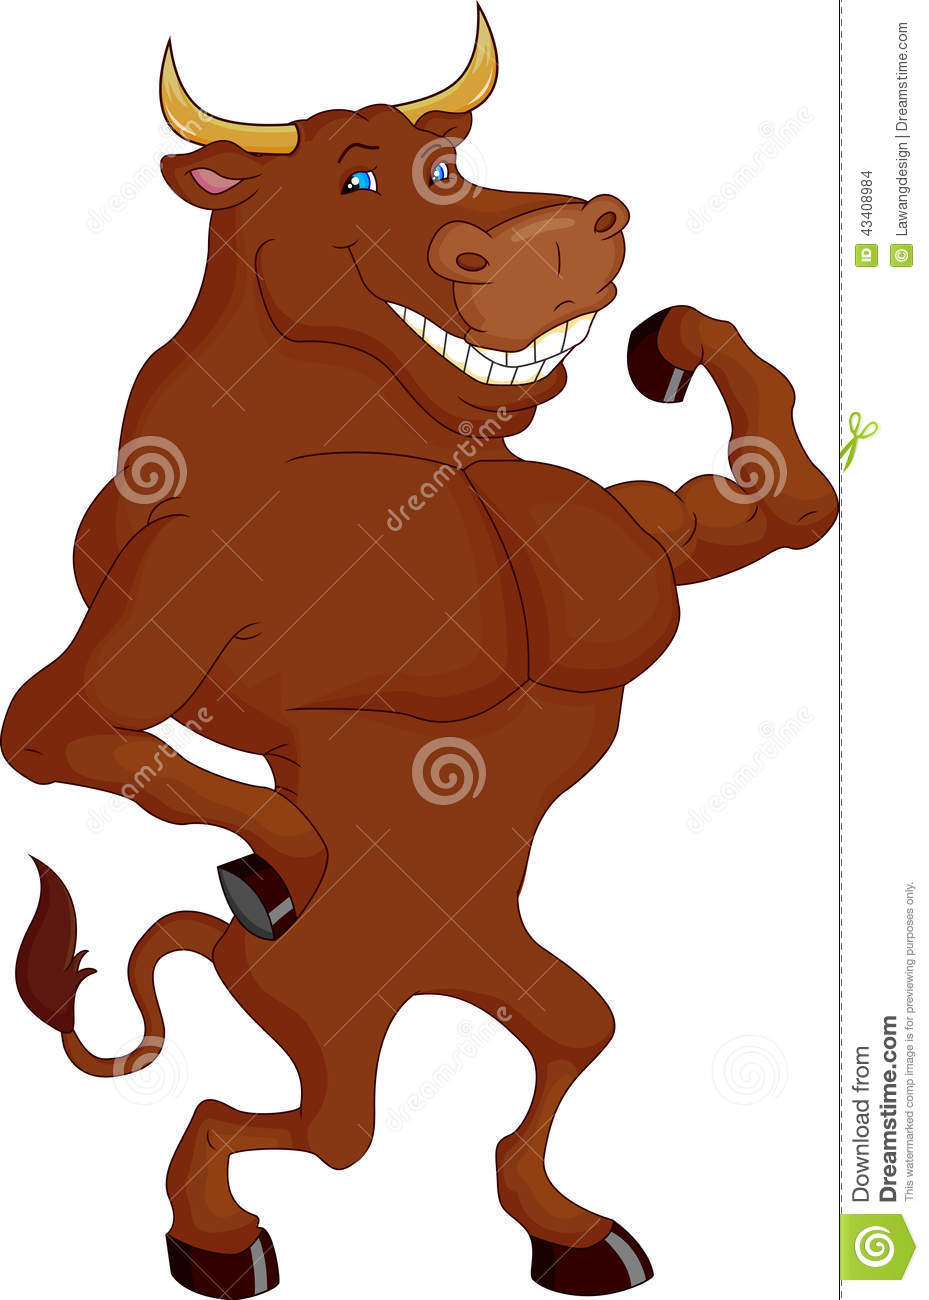 Bull clipart funny Pictures Funny Muscular Funny 16